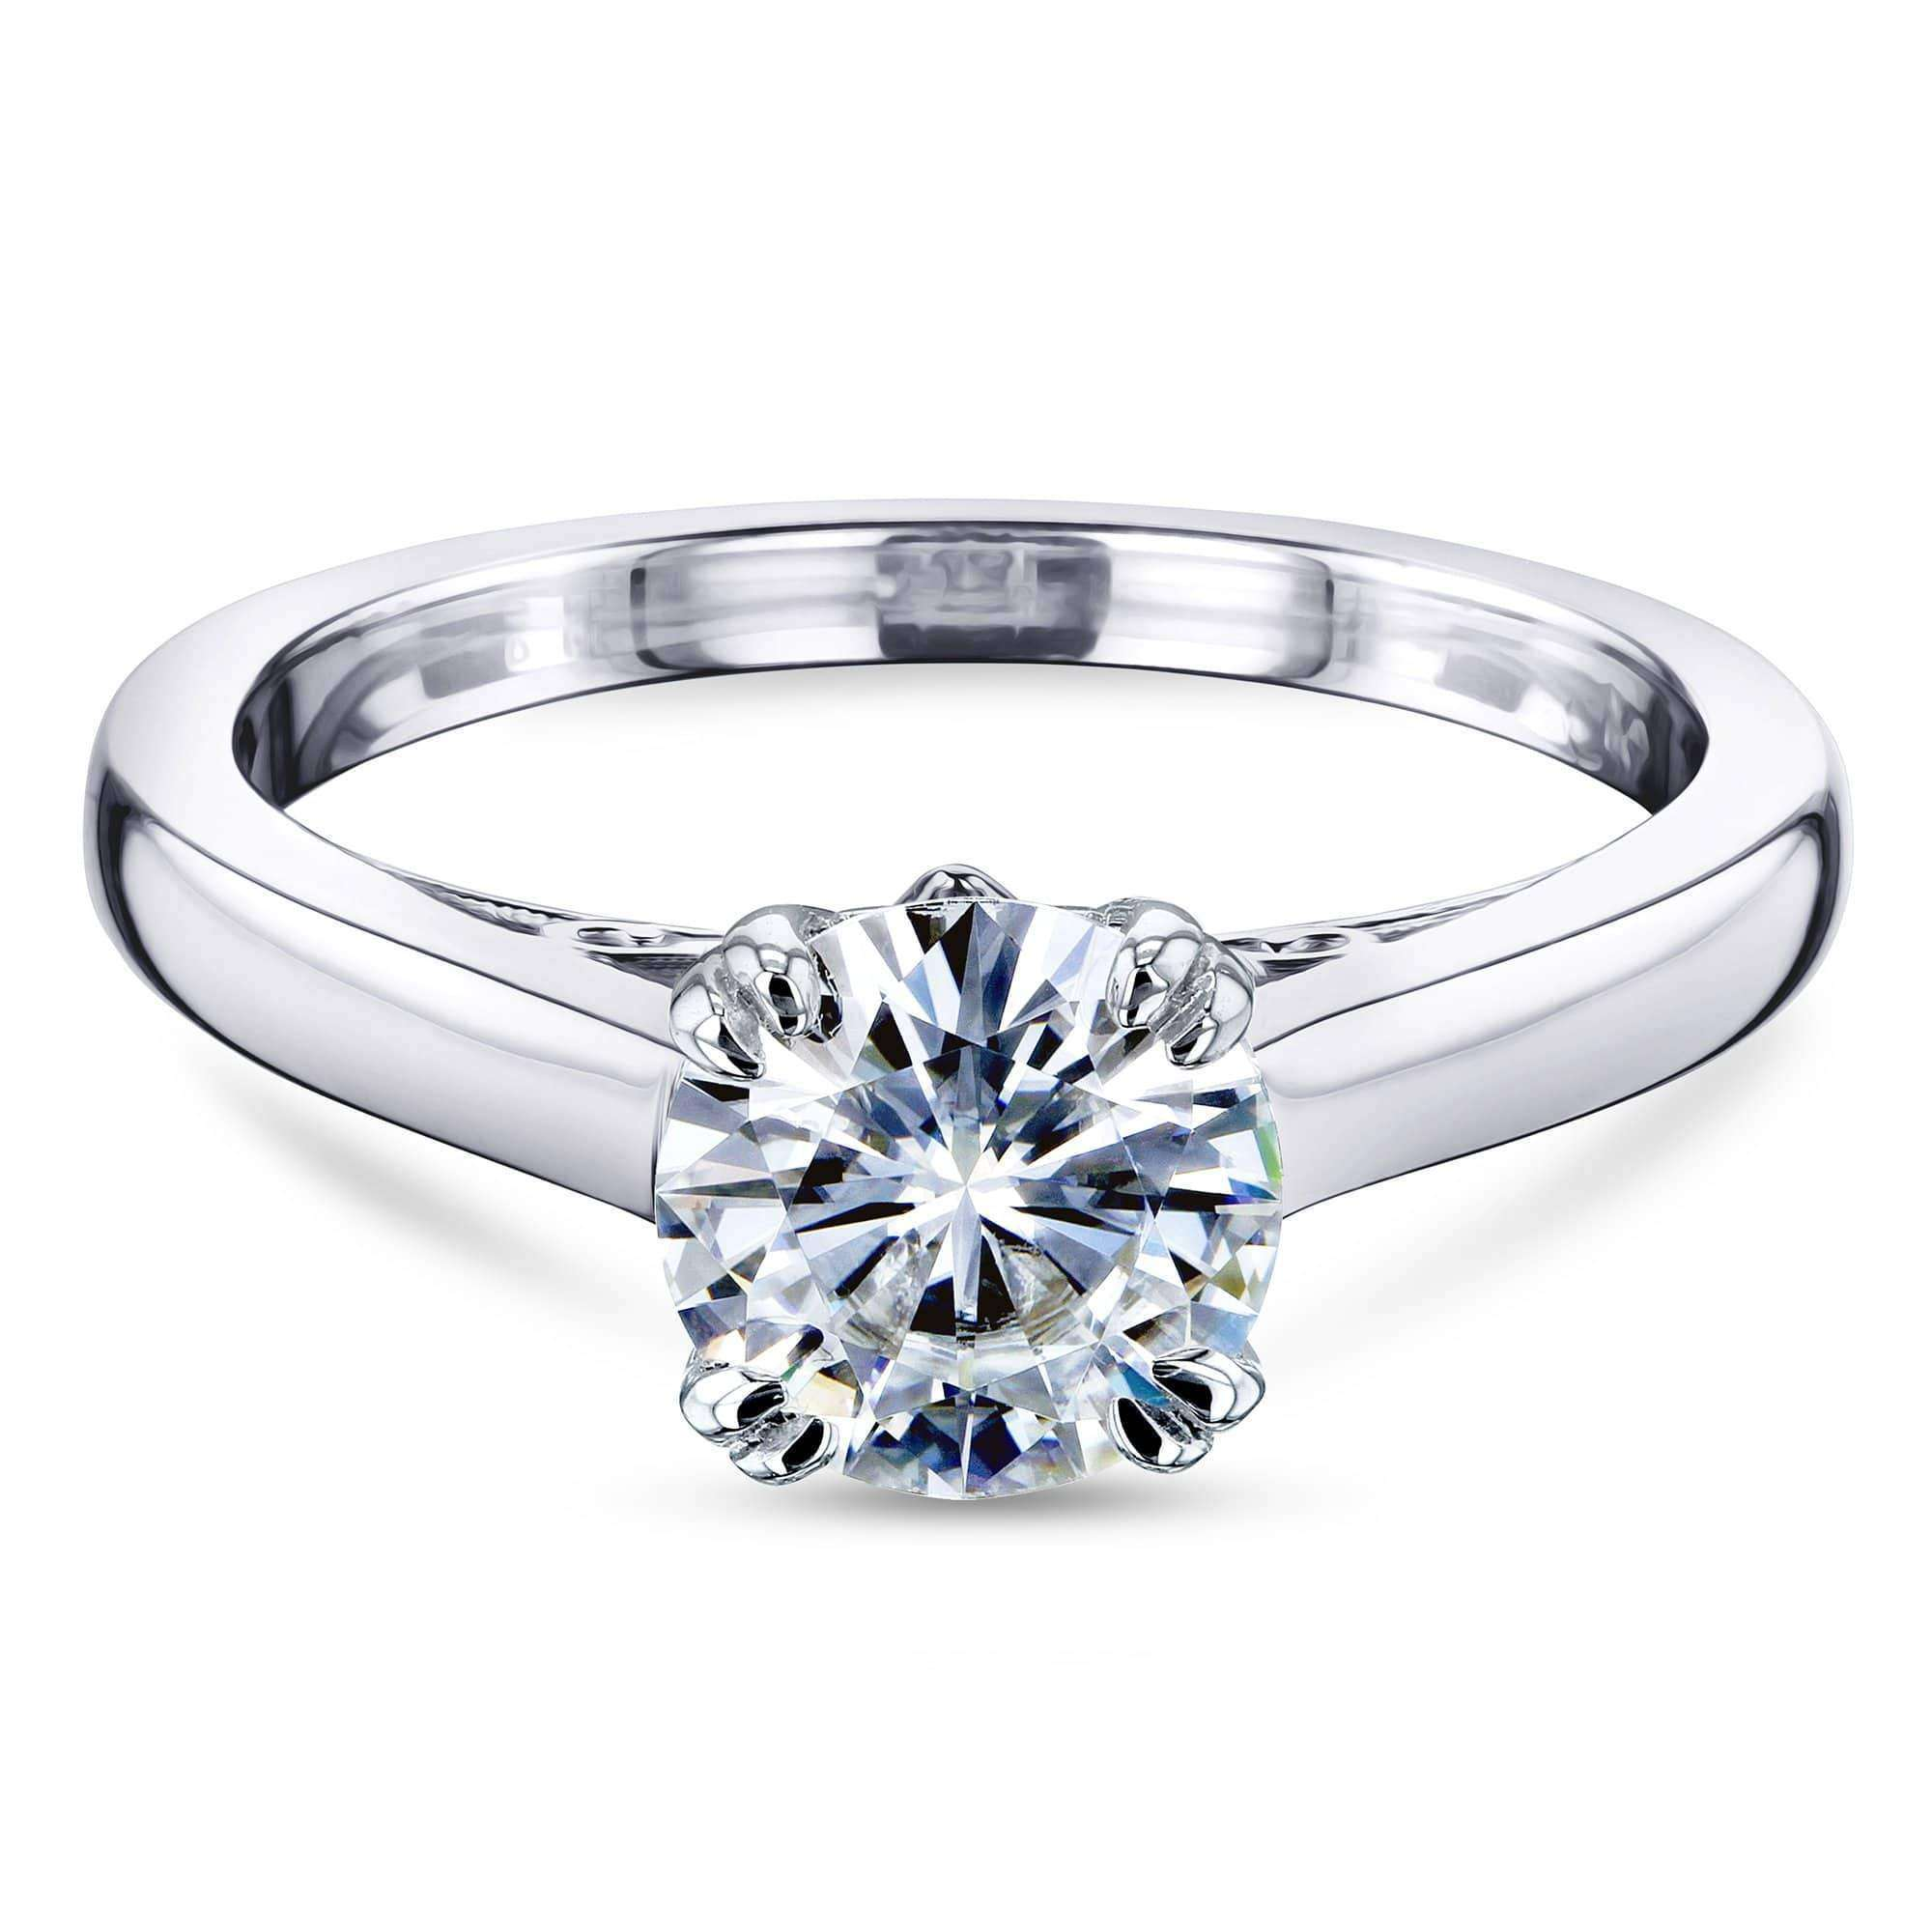 Best 1ct Round Forever One Moissanite Solitaire W-Prong Ring - white-gold 5.5